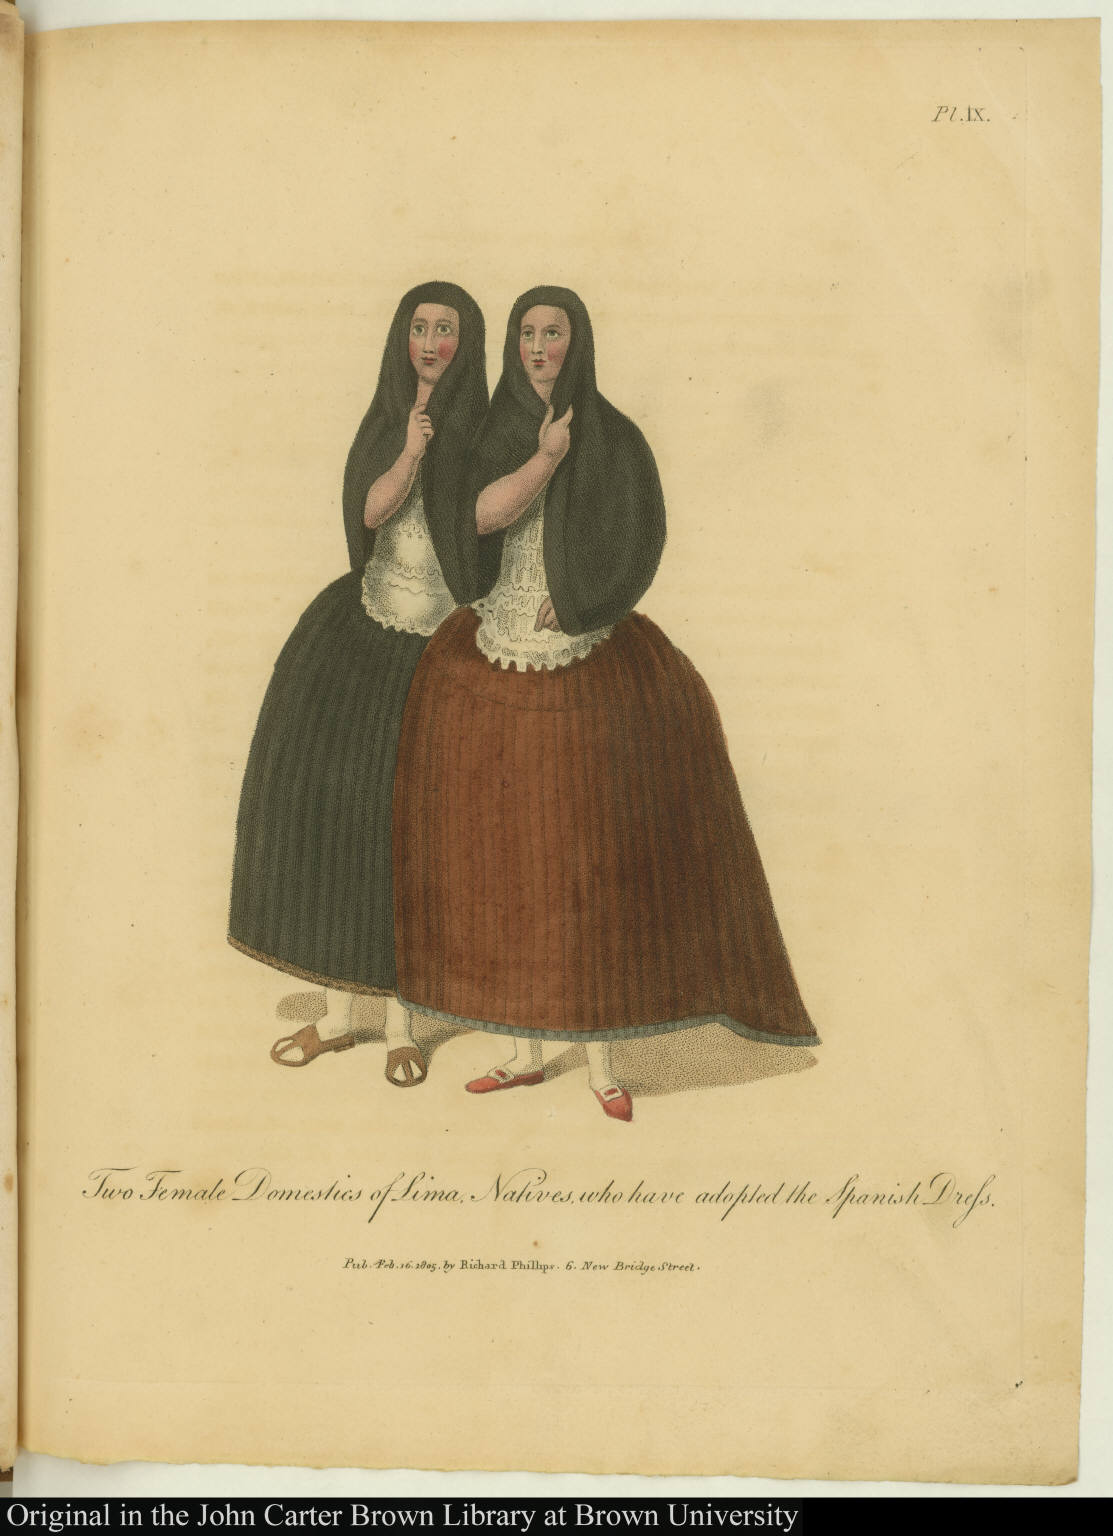 Two Female Domestics of Lima, Natives, who have adoped the Spanish Dress.